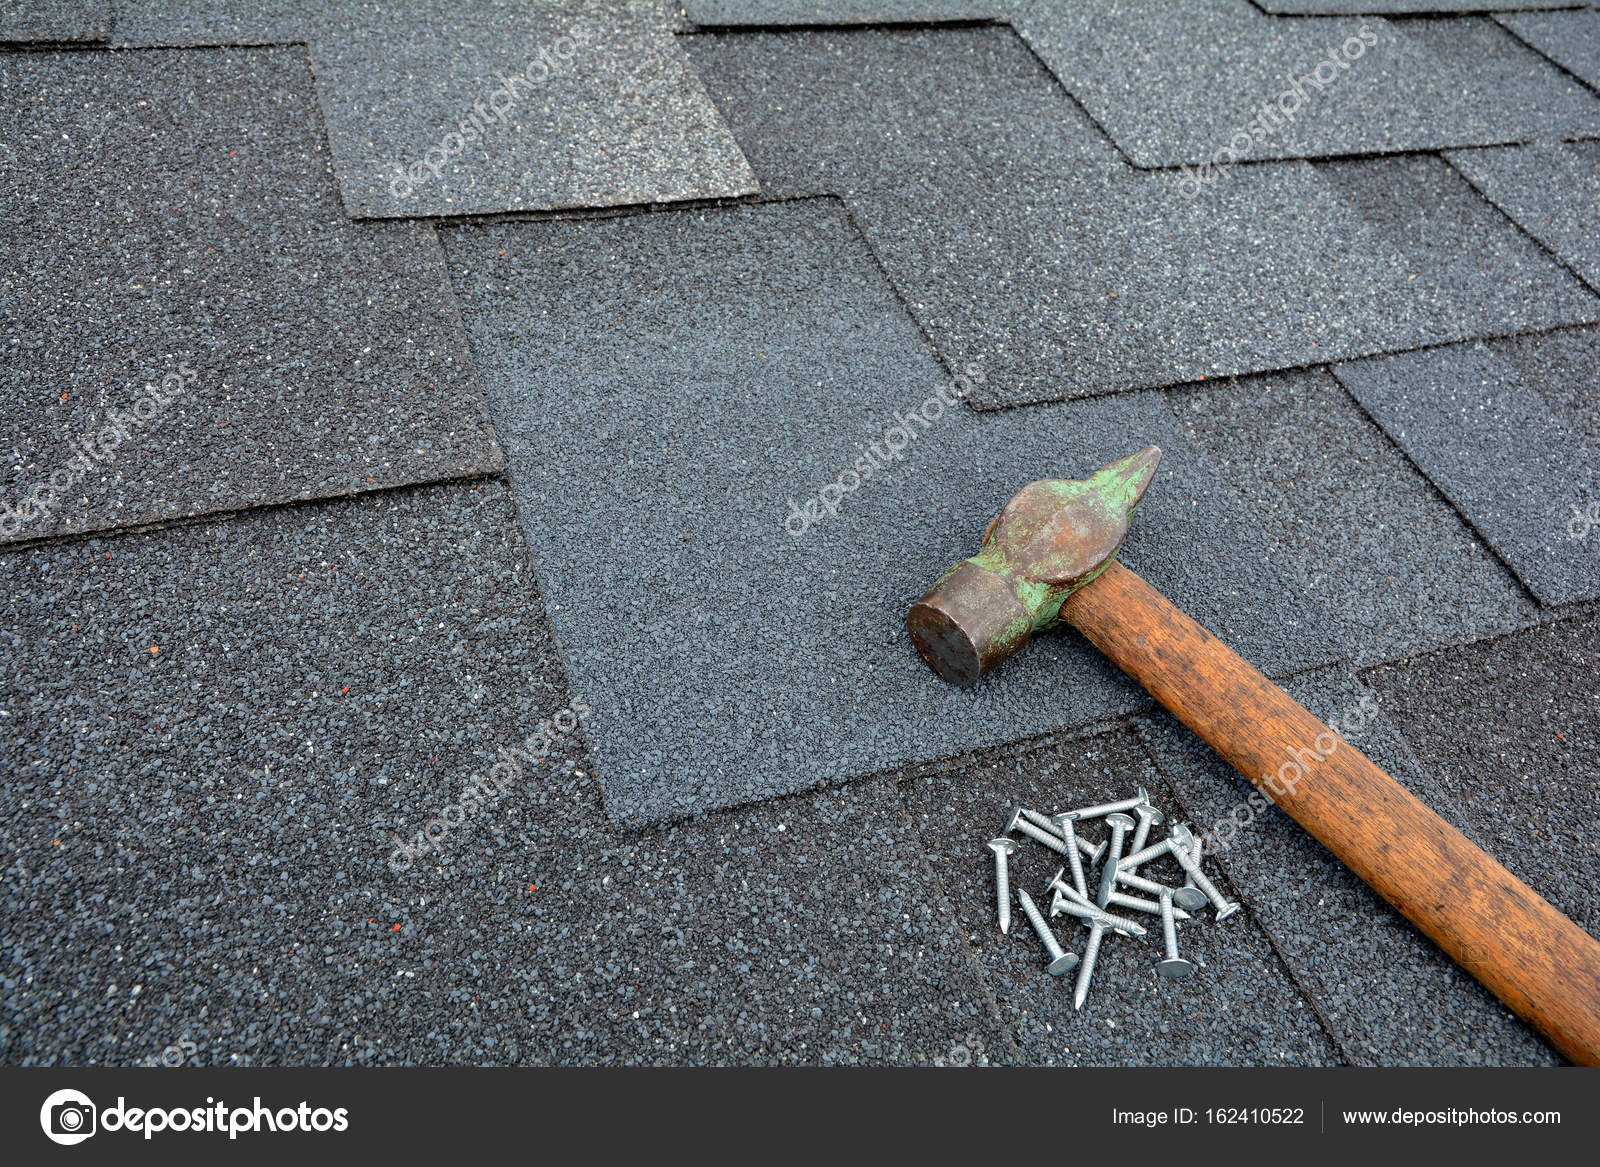 Roof Shingles - Roofing  Asphalt shingles on a roof with